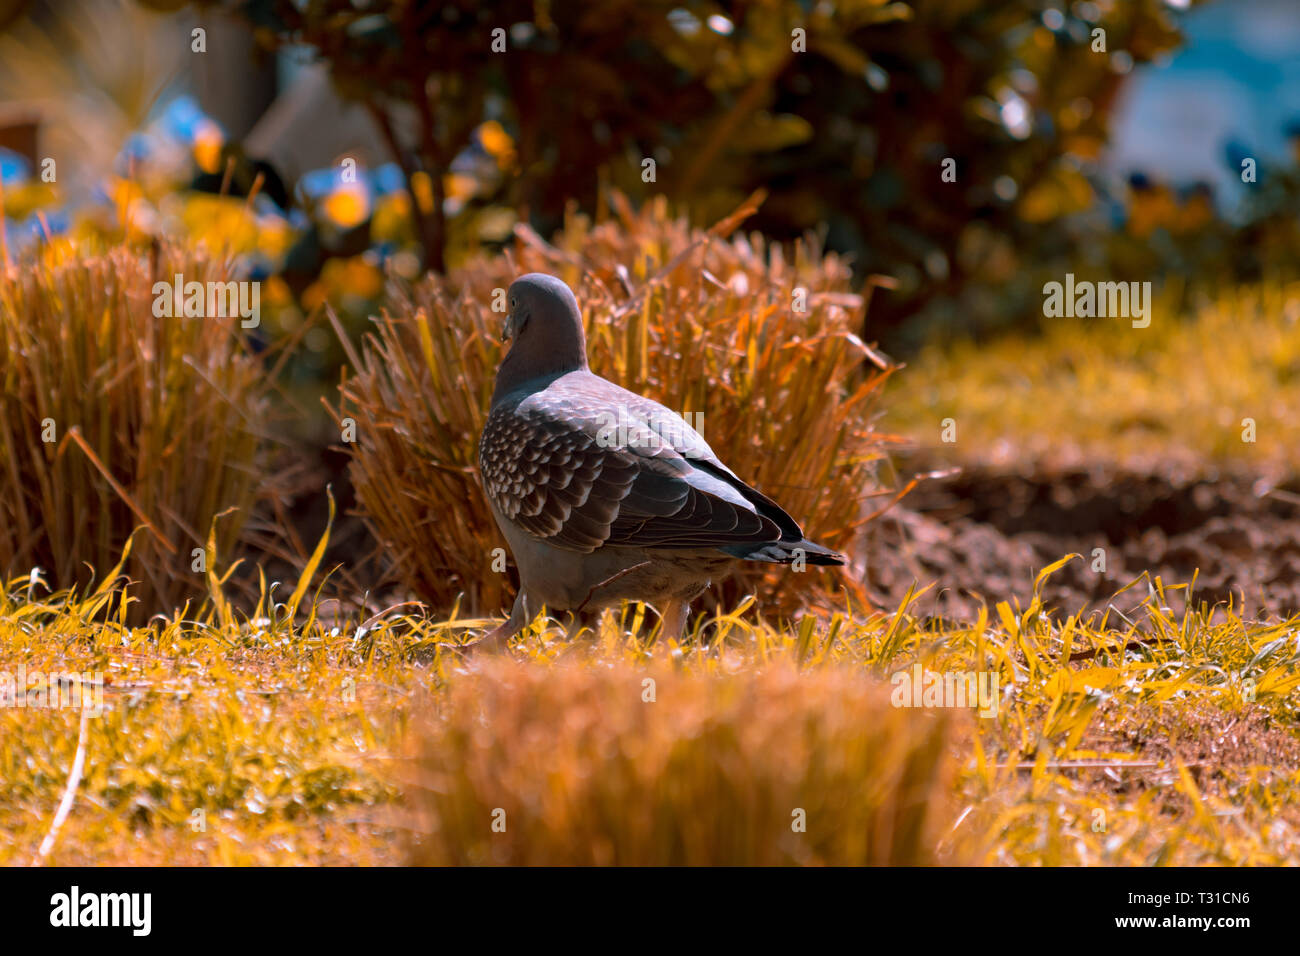 Dove walking with complete freedom in a park. Photograph taken in Punta del Este, Uruguay. - Stock Image